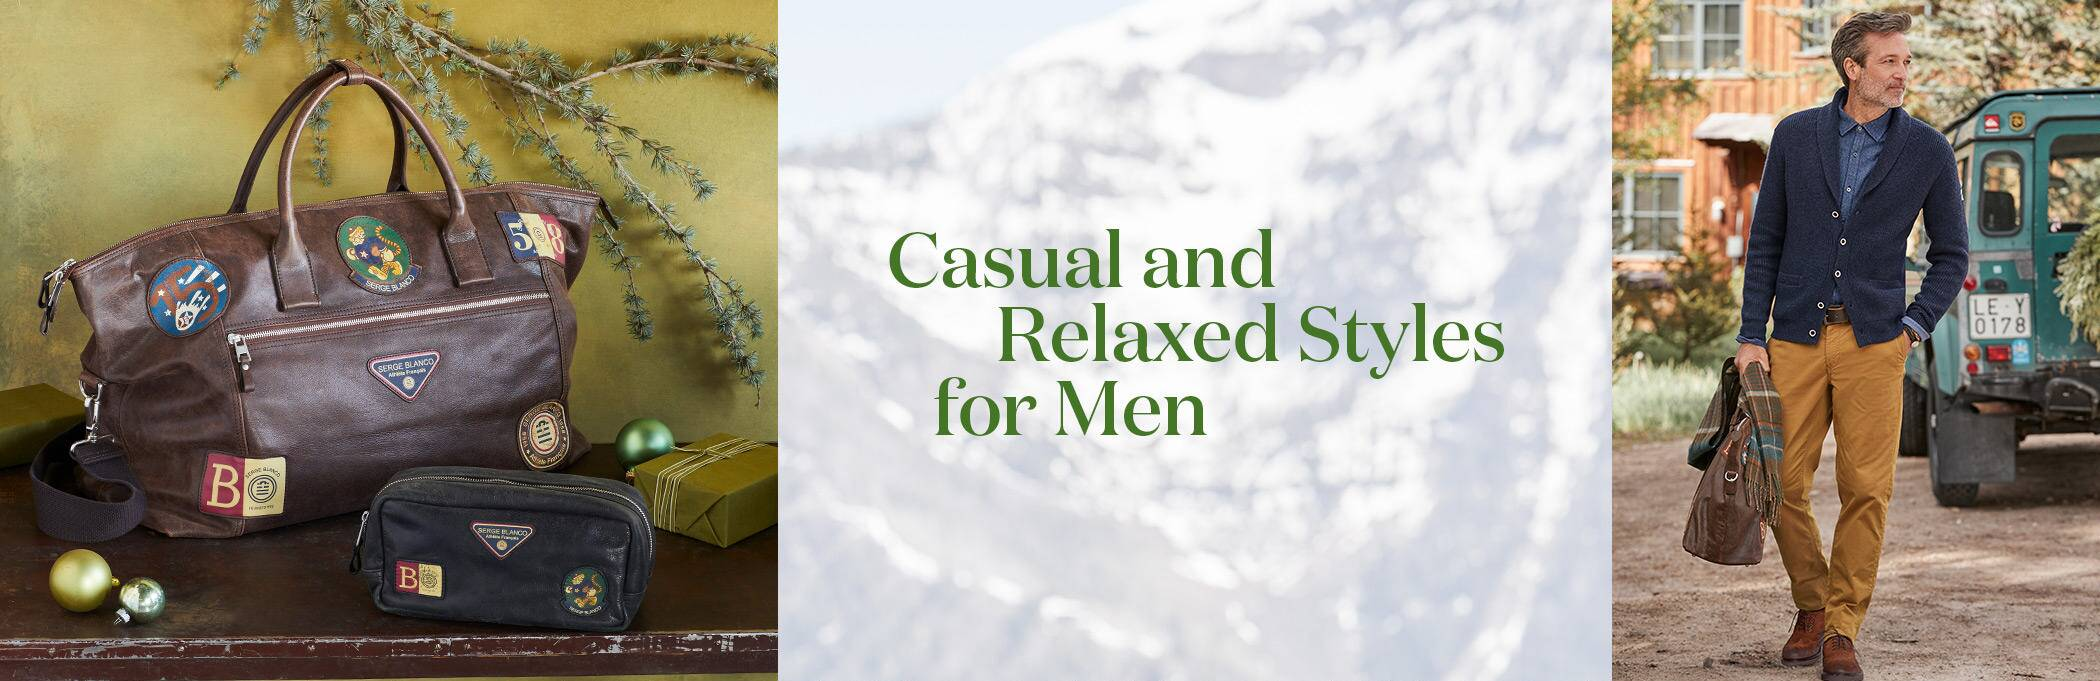 Casual and relaxed styles for Men